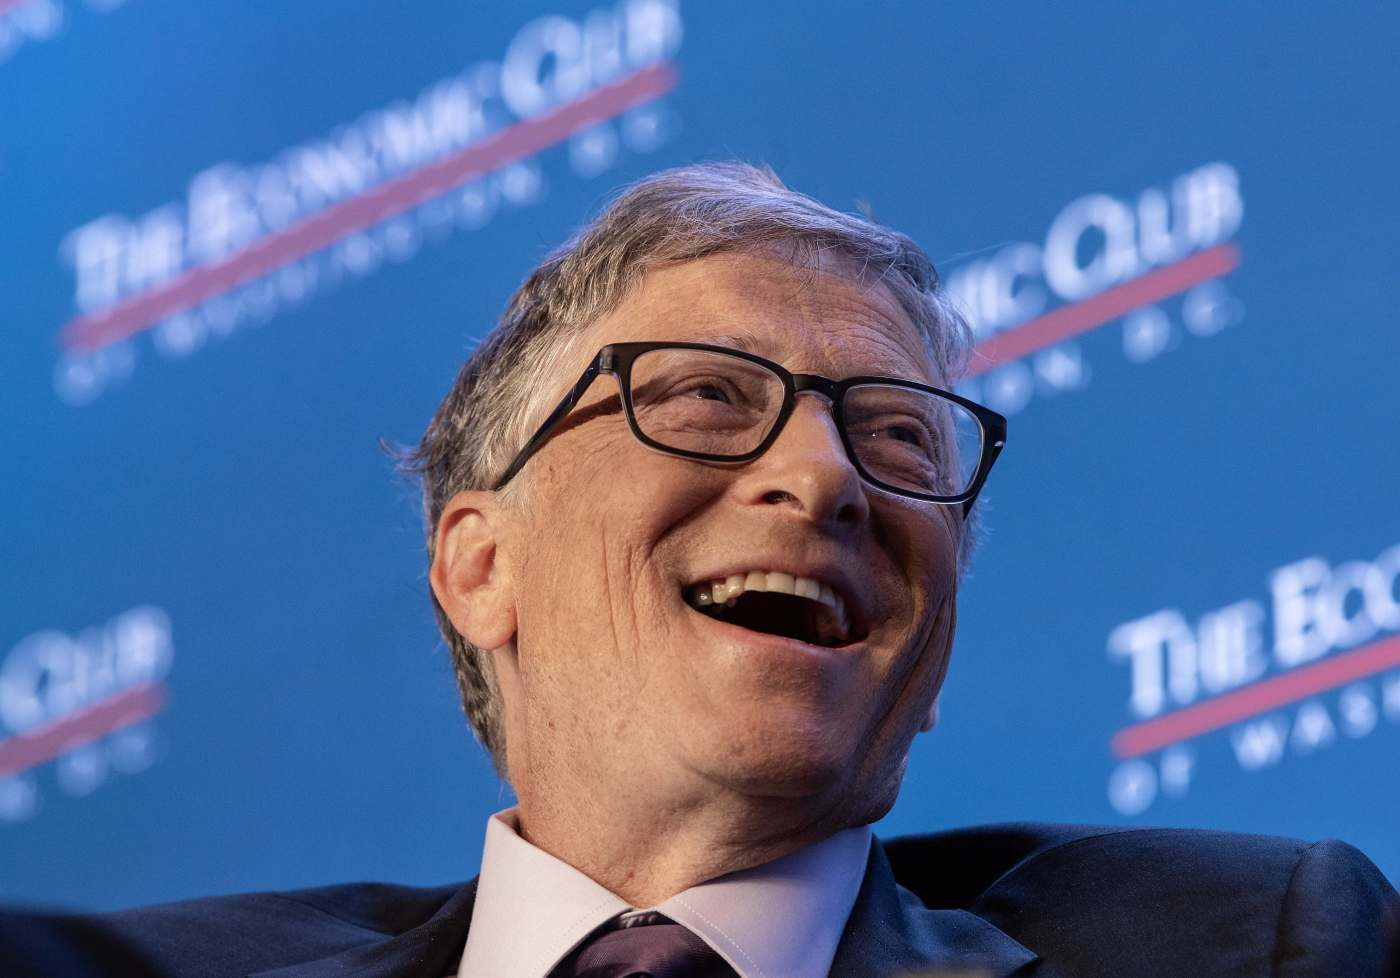 Bill Gates says these are his superpowers